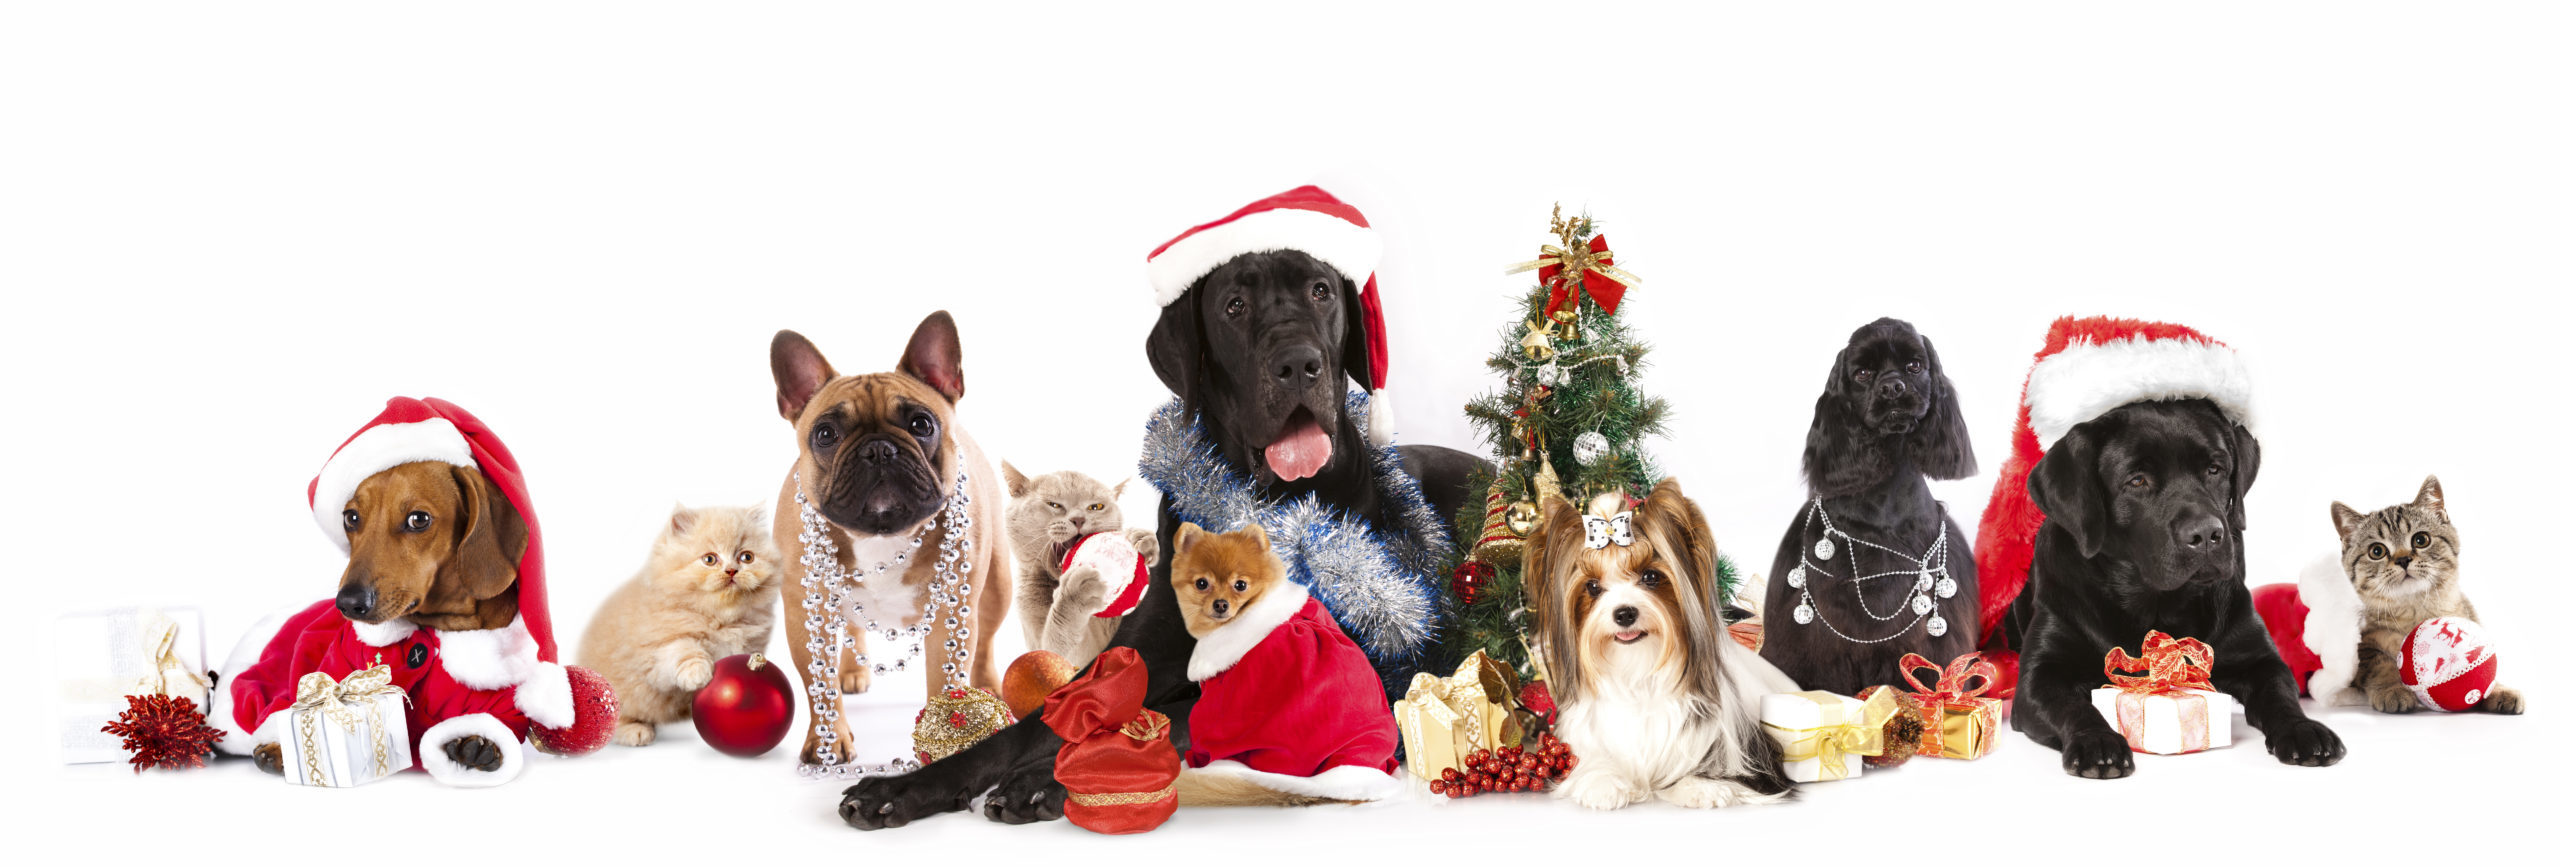 christmas-cats-and-dogs-6012472